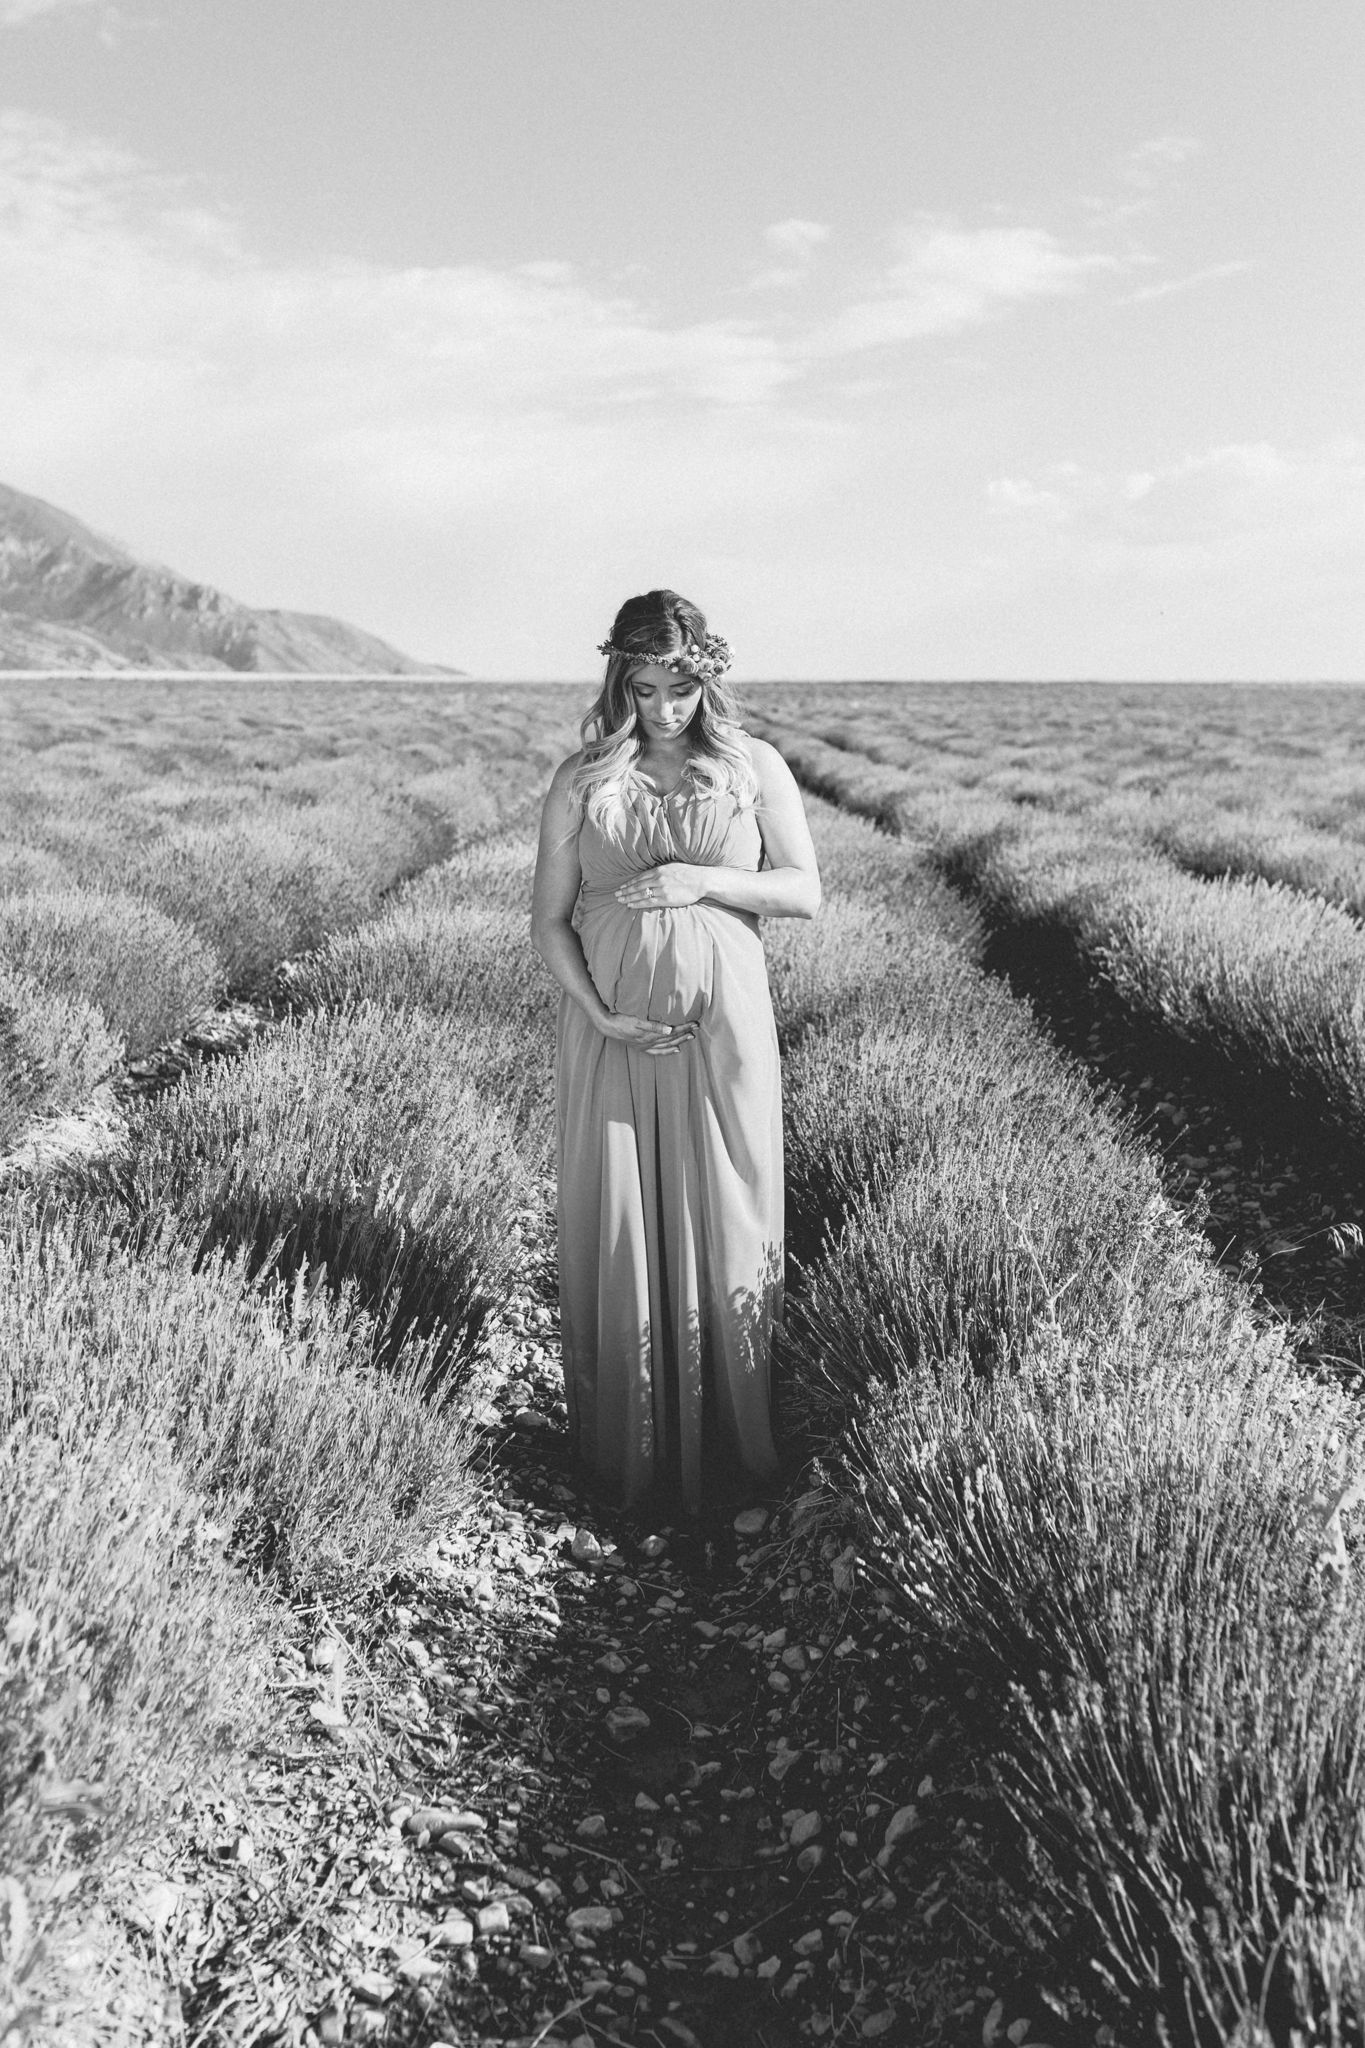 Maternity-photos-whitney-bufton-photography-utah-6.jpg